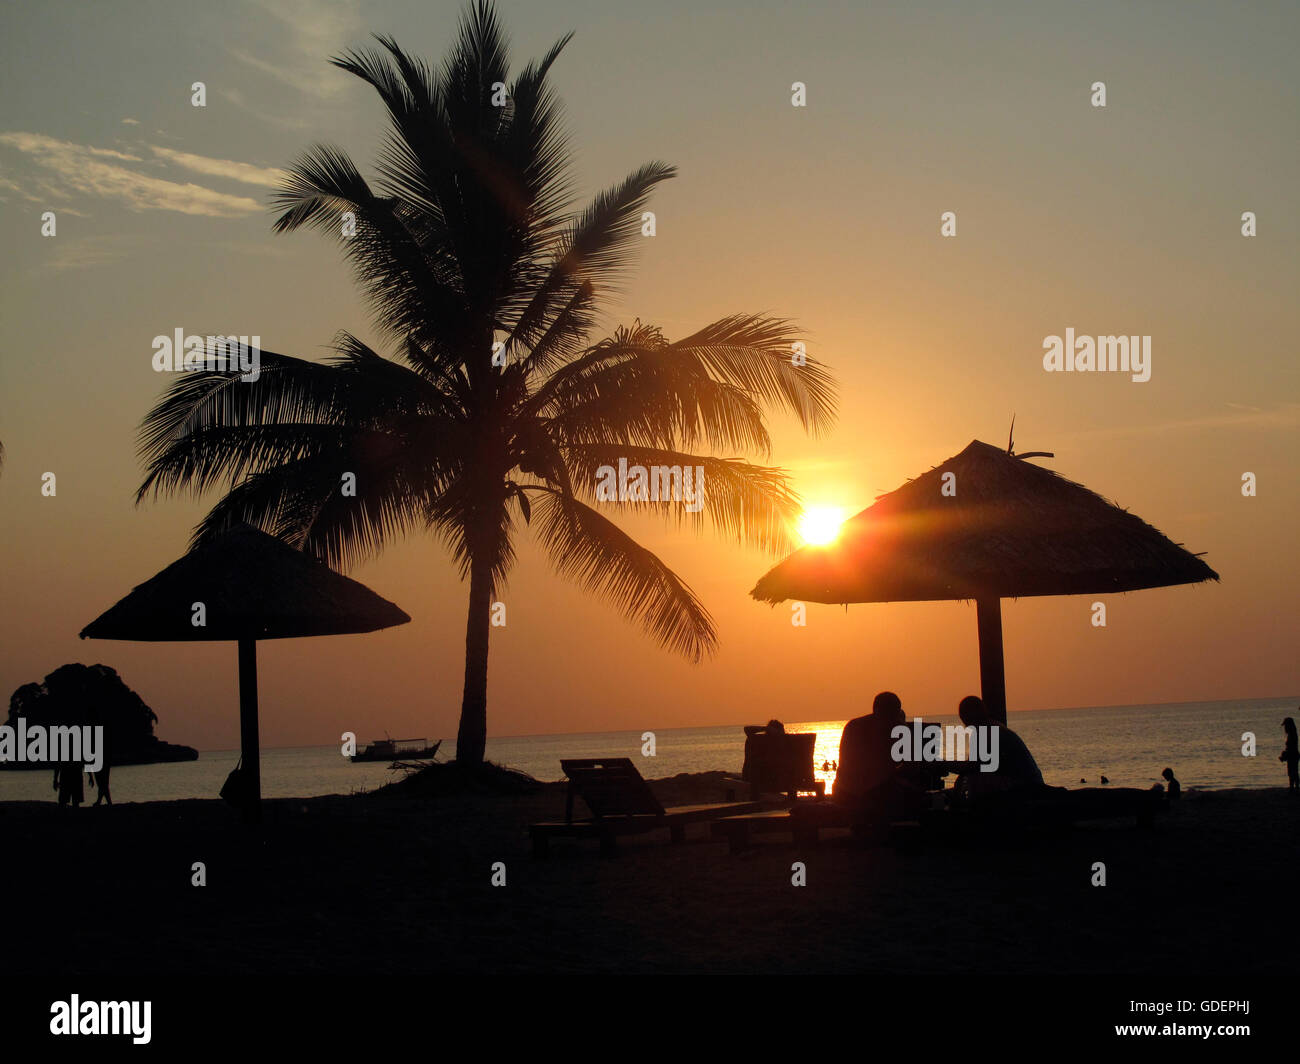 Sunset, el Berjaya Beach, Golf & Spa Resort, La isla de Tioman, Malasia / sombrilla Foto de stock